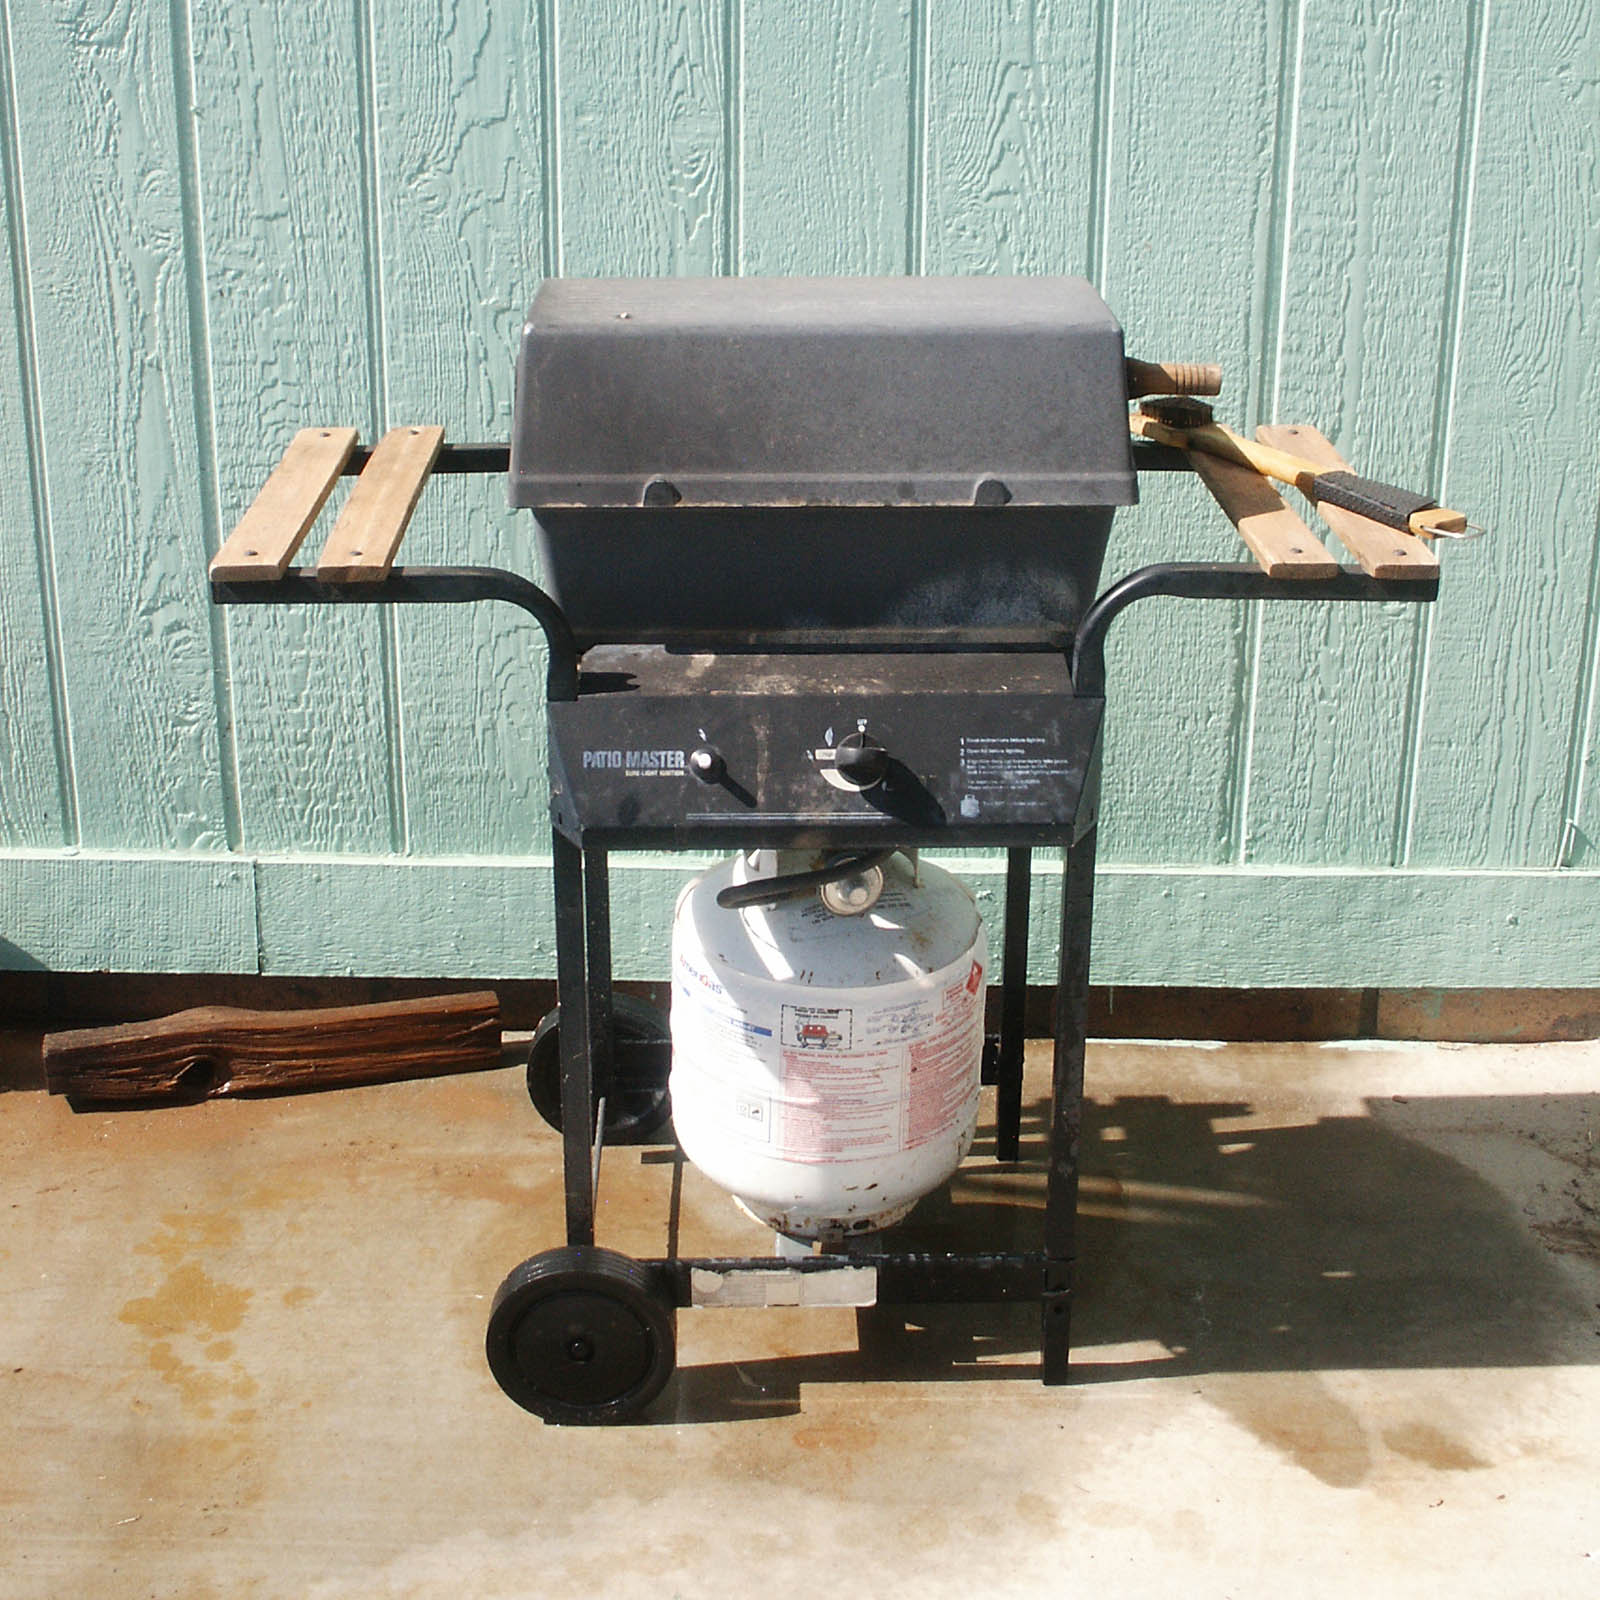 Barbecue Grills Fuel DIY Projects Craft Ideas & How To s for Home